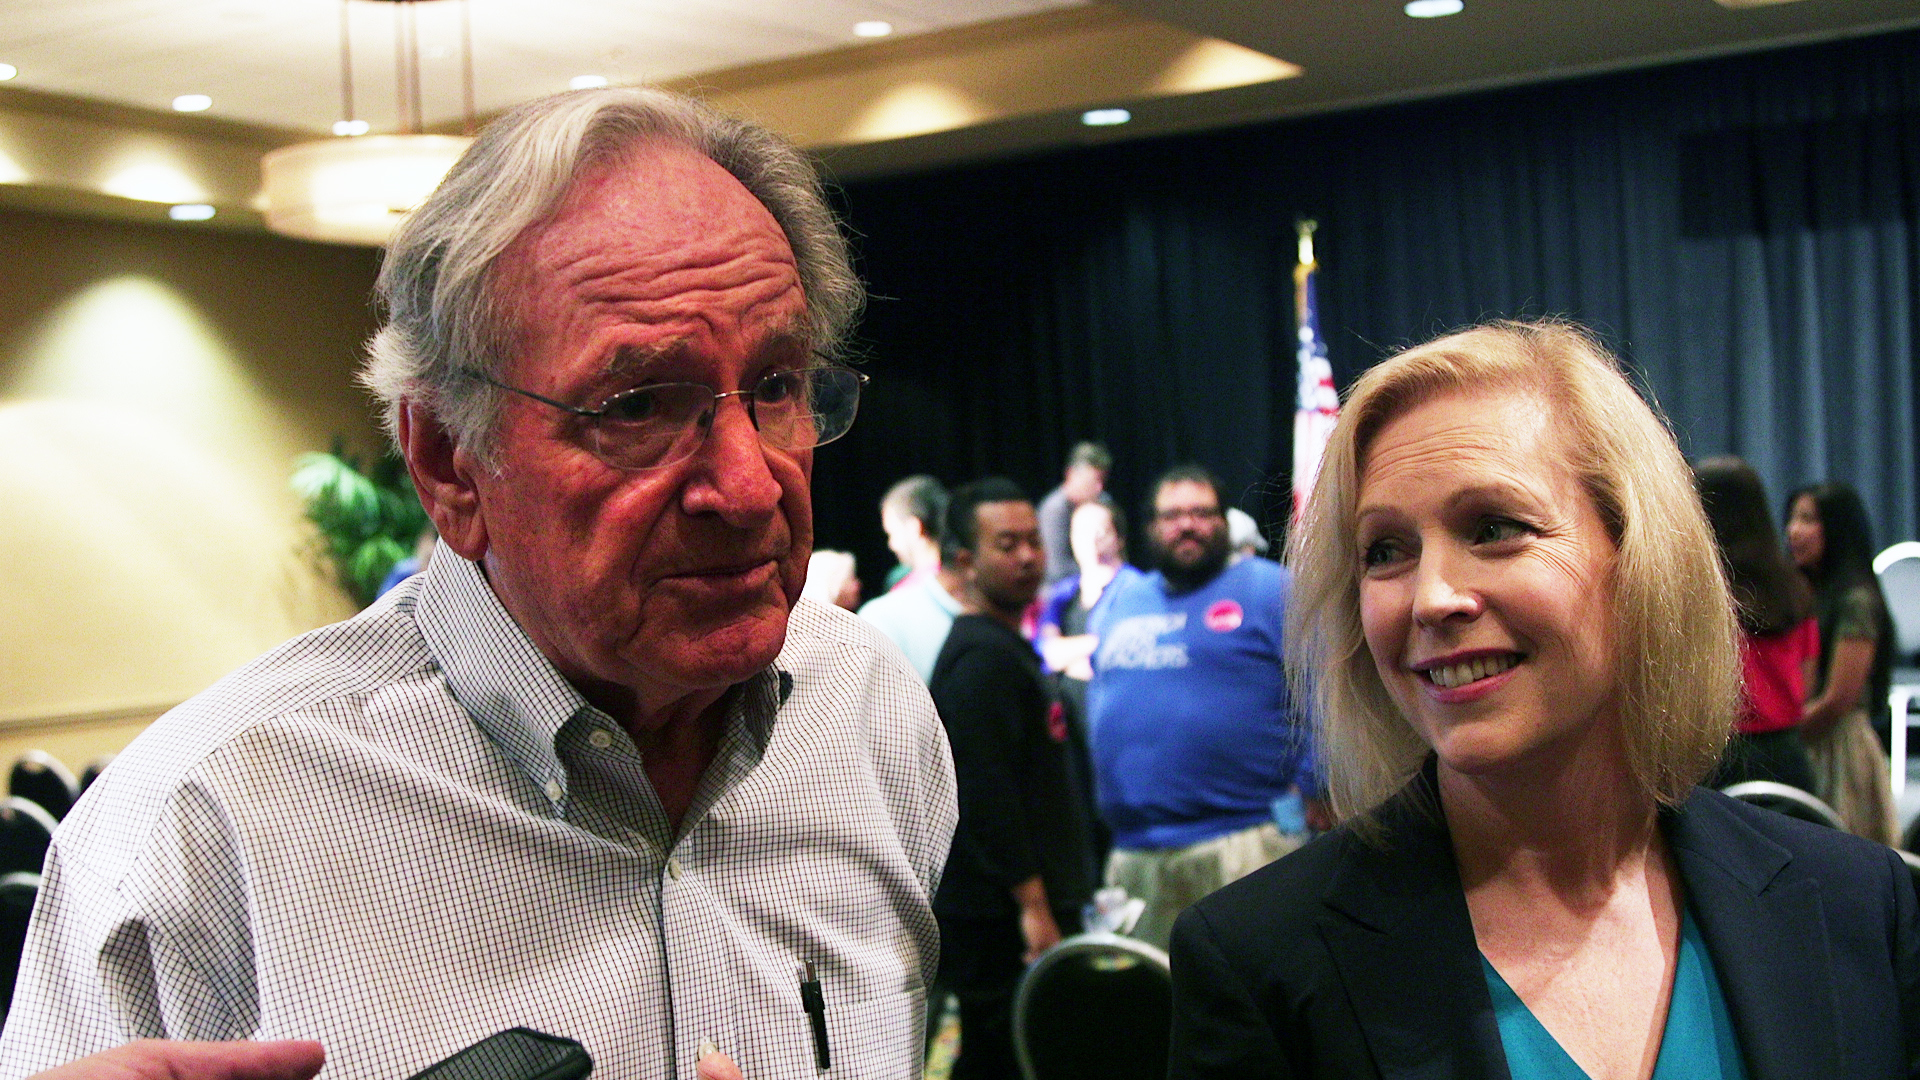 UNITED STATES - AUGUST 11: Former Sen. Tom Harkin and Sen. Kirsten Gillibrand speak to reporters at a community conversation to discuss disability rights at the Holiday Inn in West Des Moines on August 11, 2019 (Photo by Thomas McKinless/CQ Roll Call).